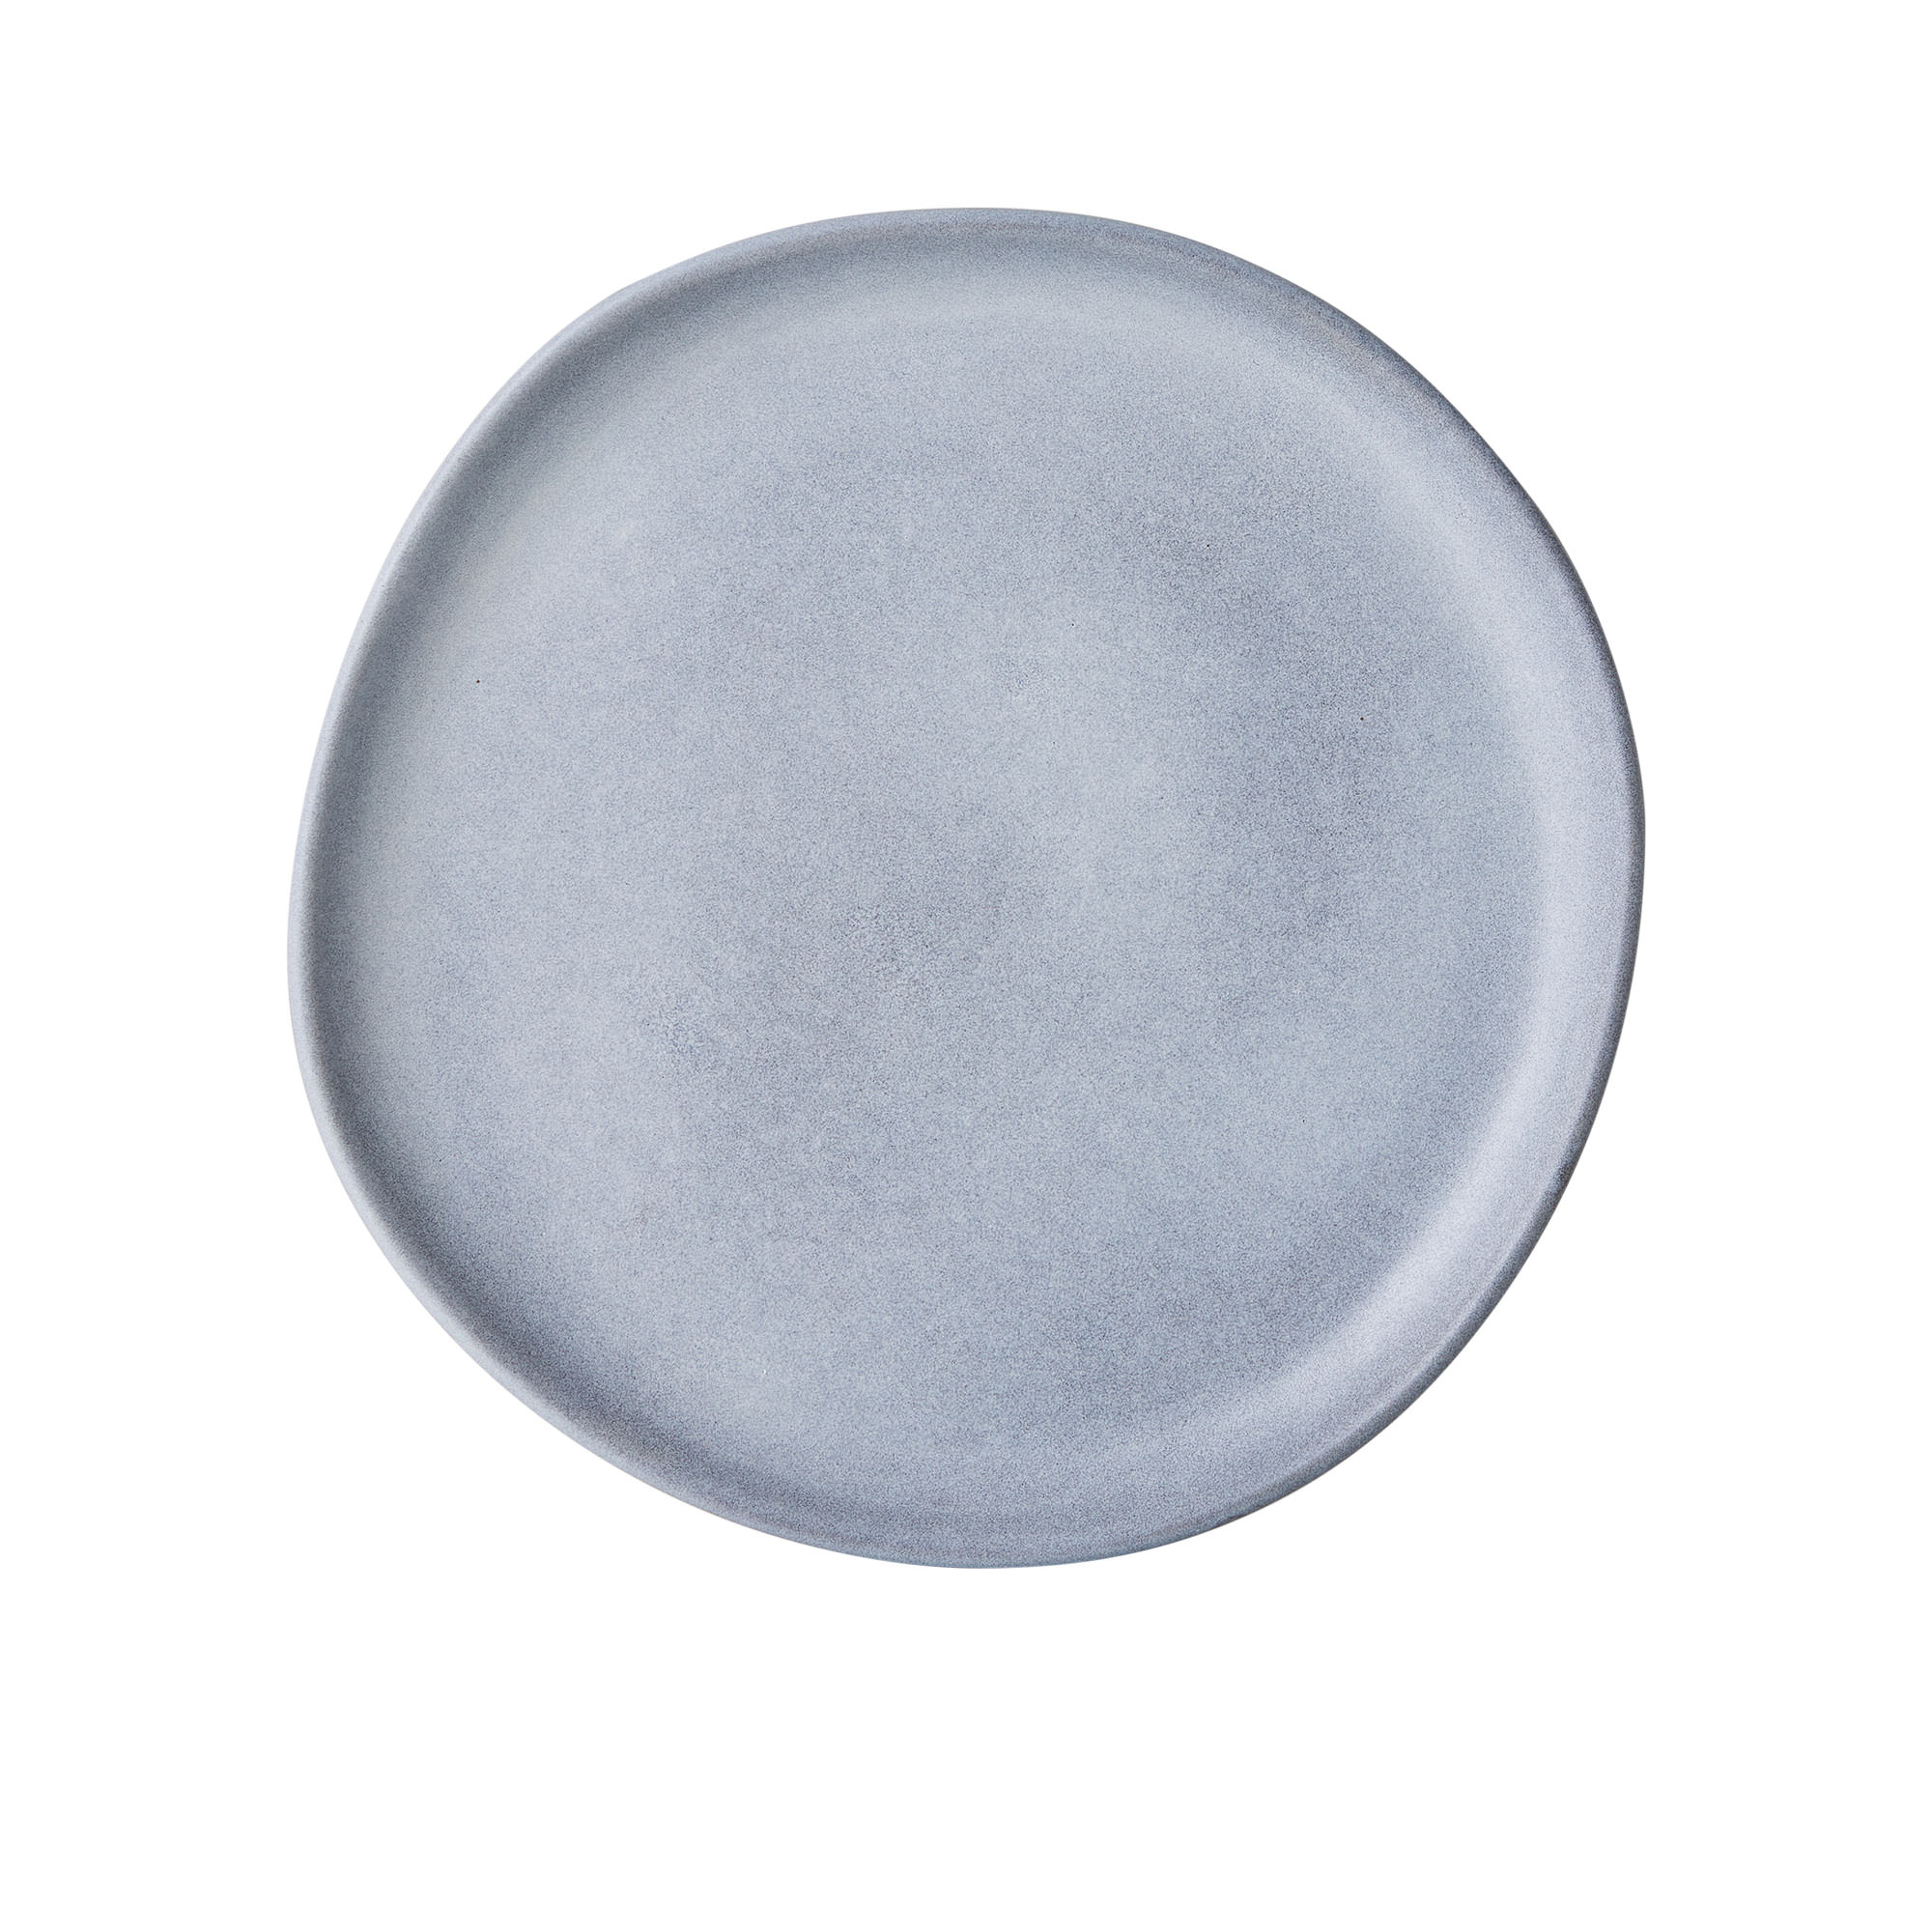 Salisbury & Co Capri Salad Plate 20.5cm Light Blue